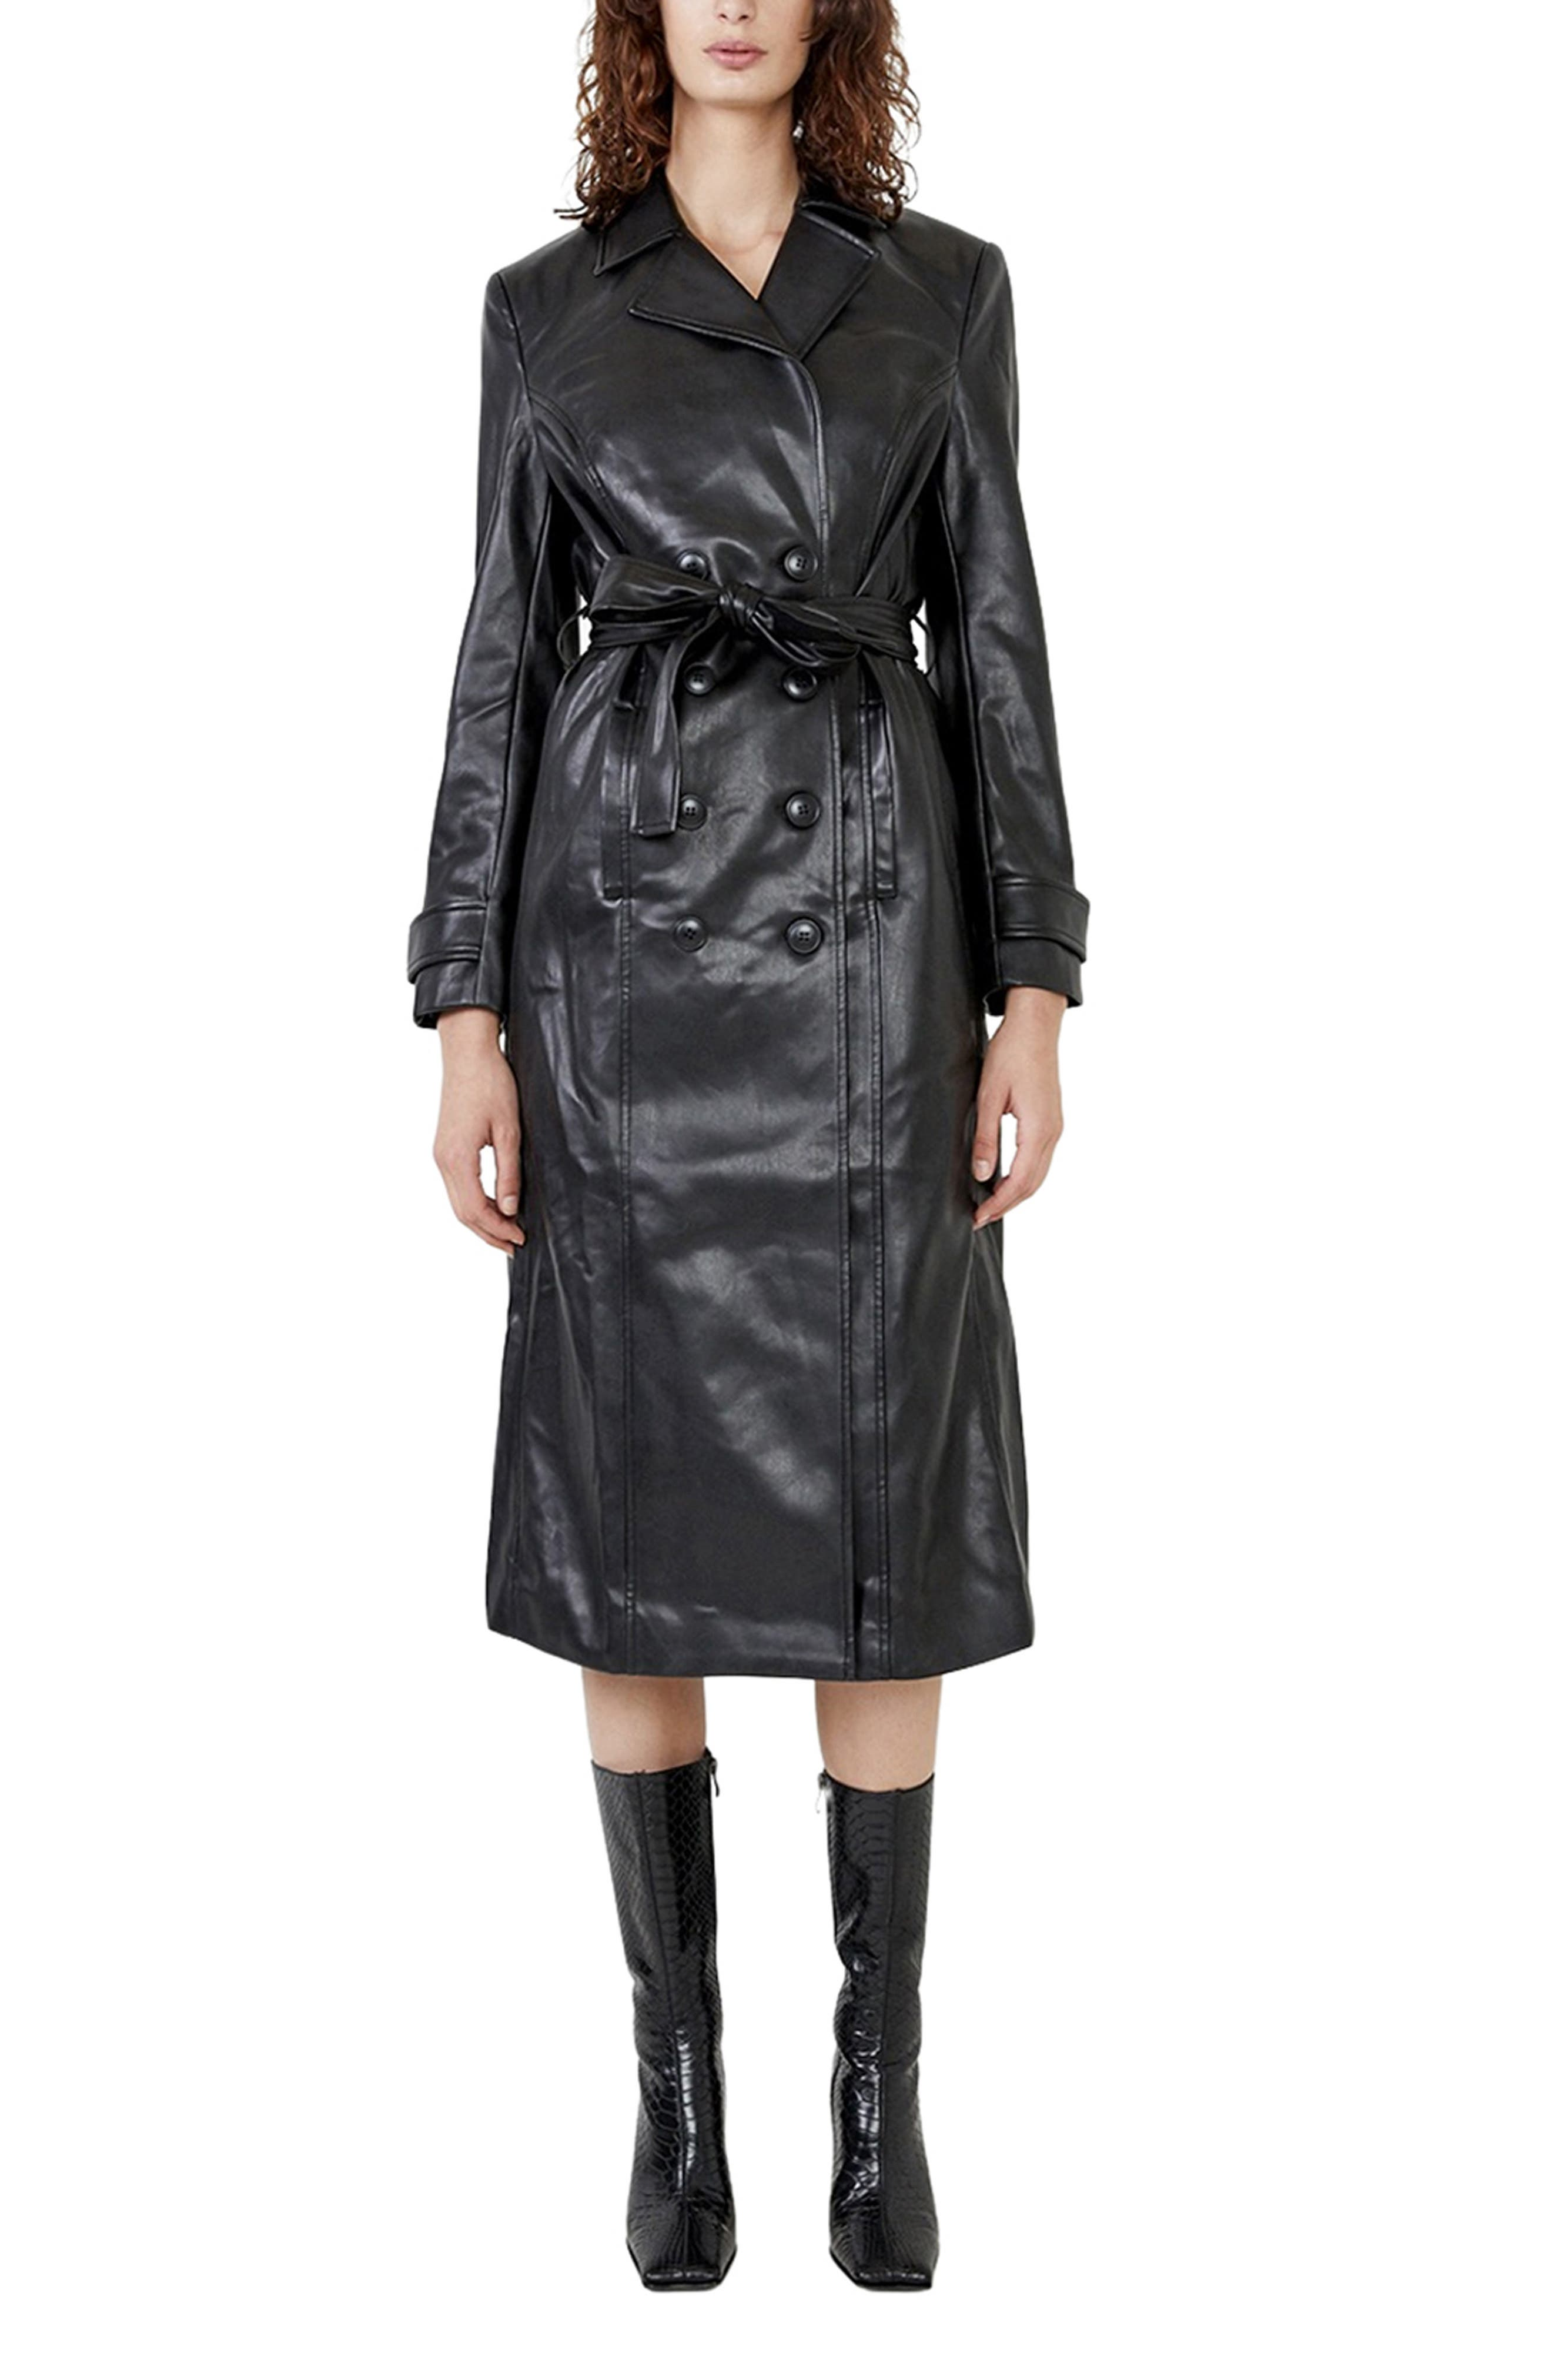 80s Windbreakers, Jackets, Coats | 90s Outerwear Womens Bardot Faux Leather Trench Coat Size X-Small - Black $199.00 AT vintagedancer.com